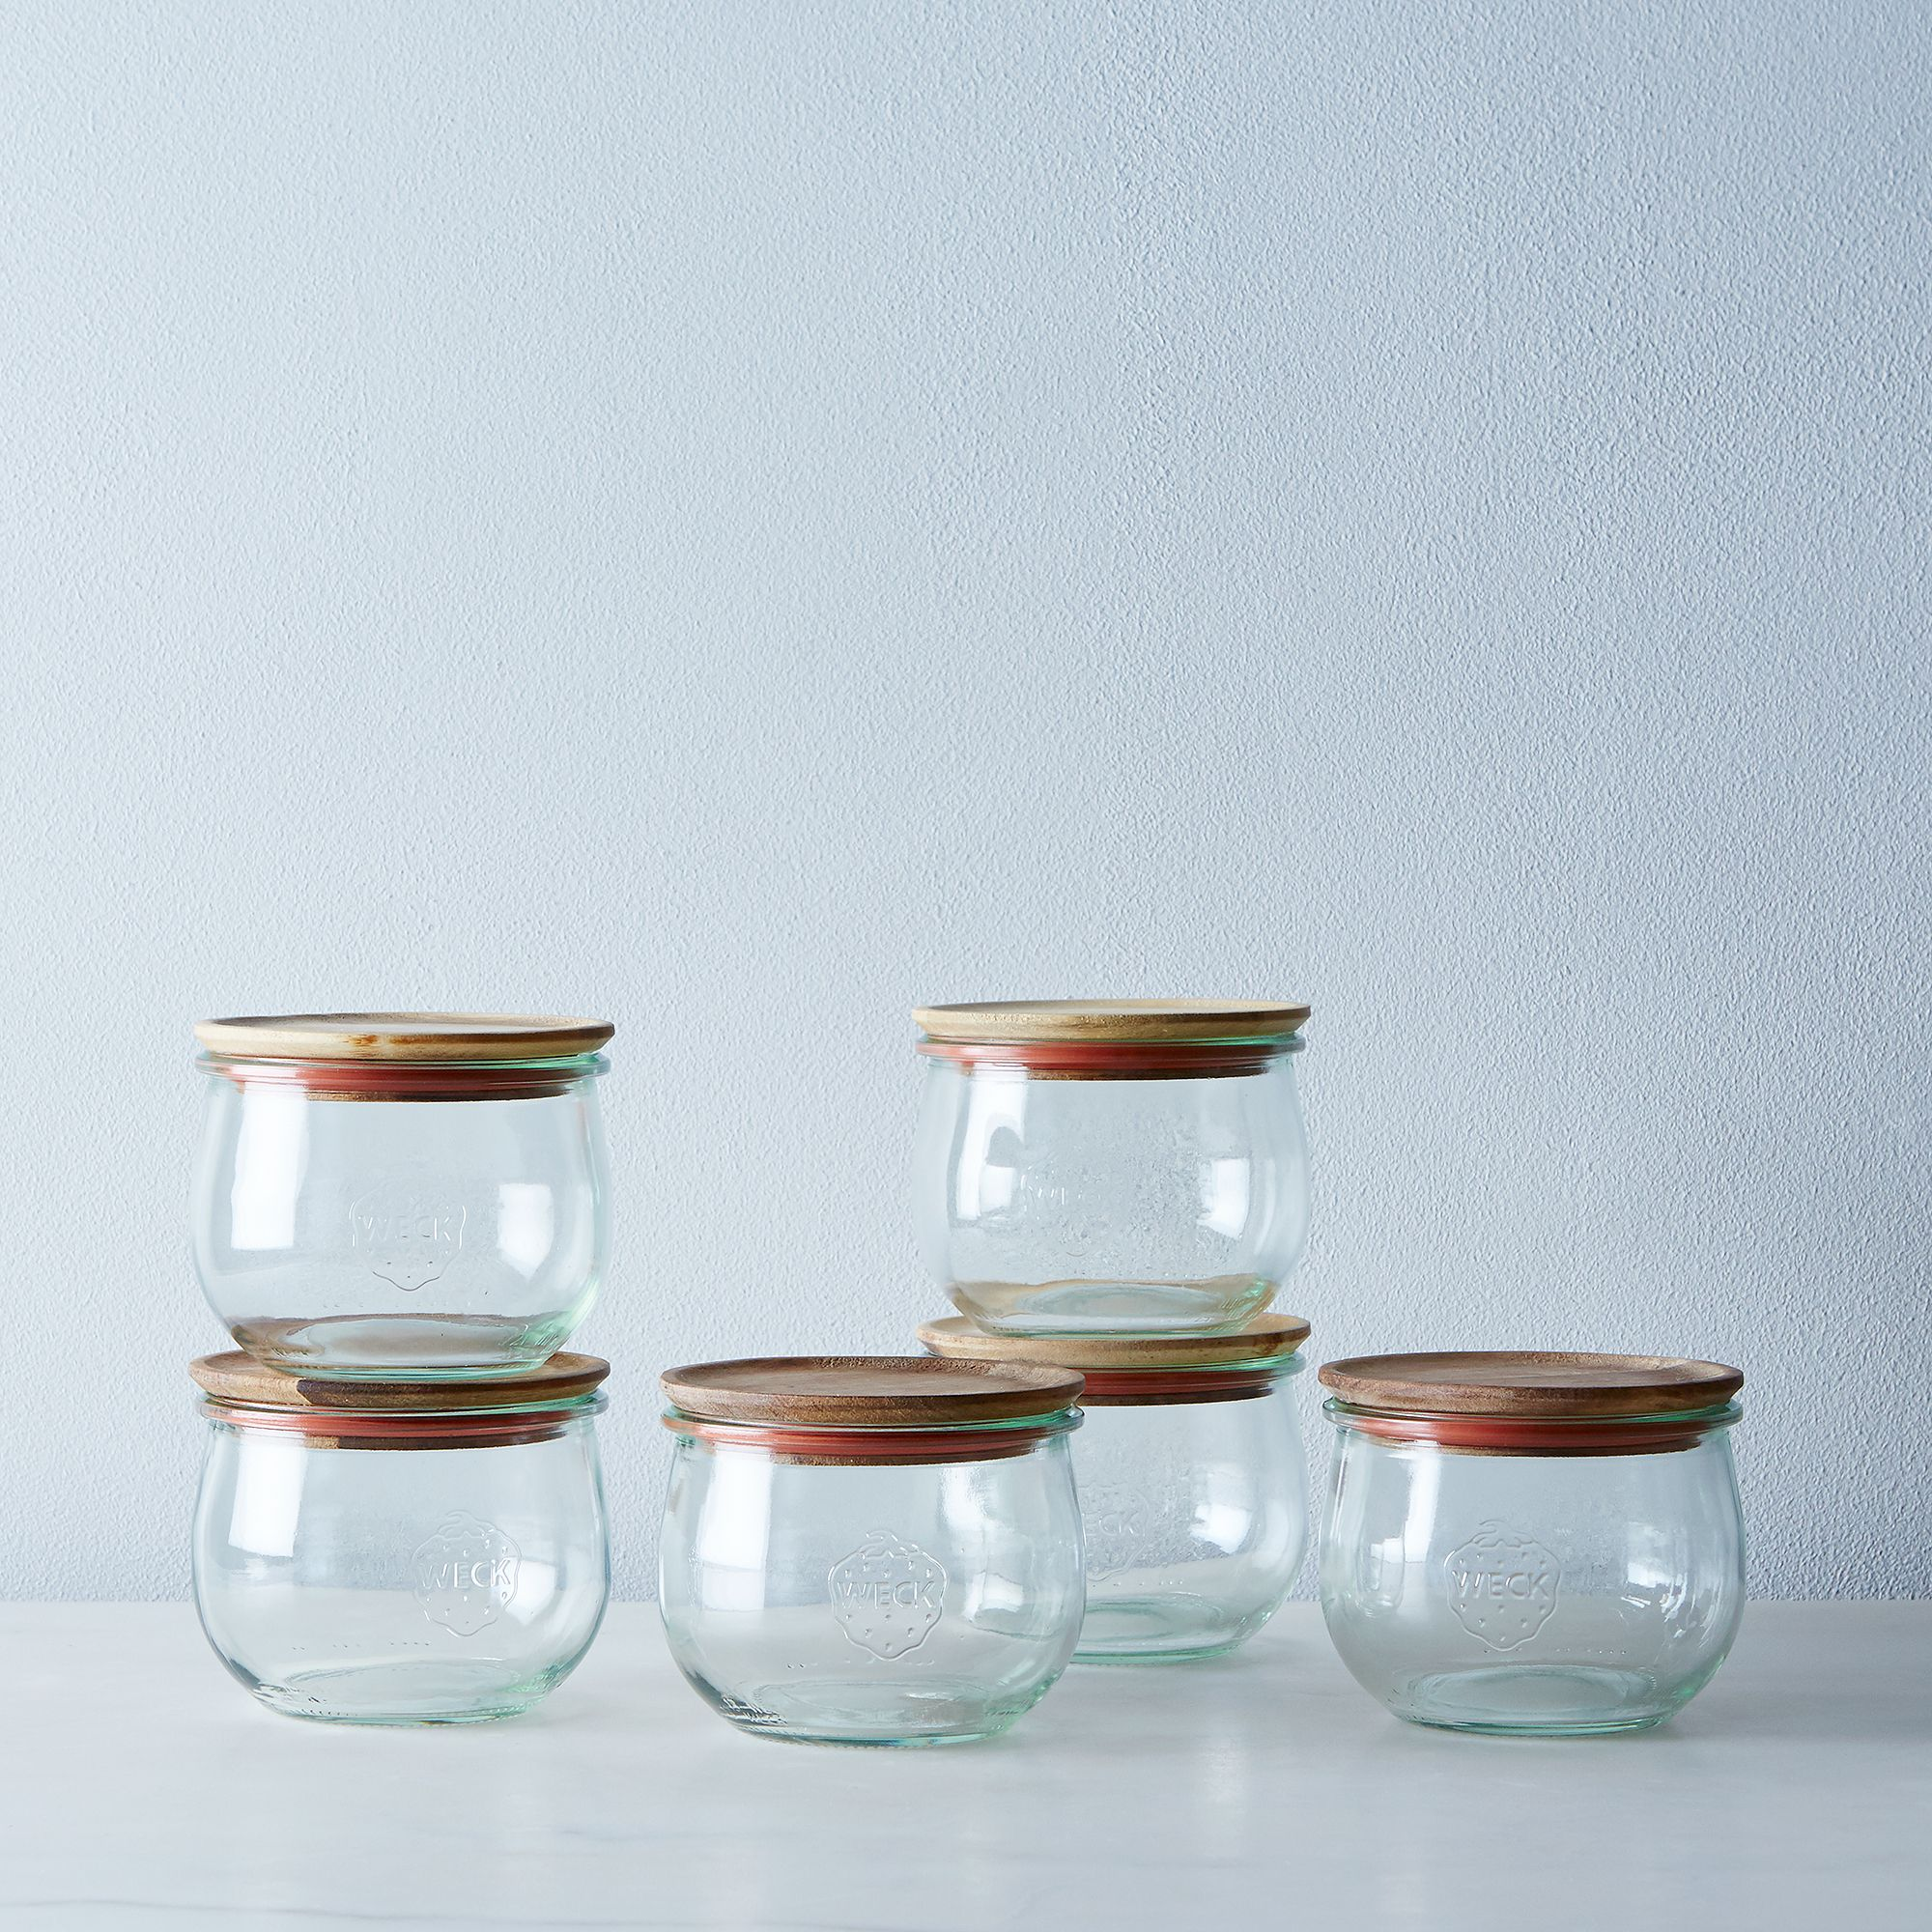 06009404 69af 465e aa60 366d1510f4f1  2016 0318 mountain feed tulip jars with wood lids set of 6 silo rocky luten 2019